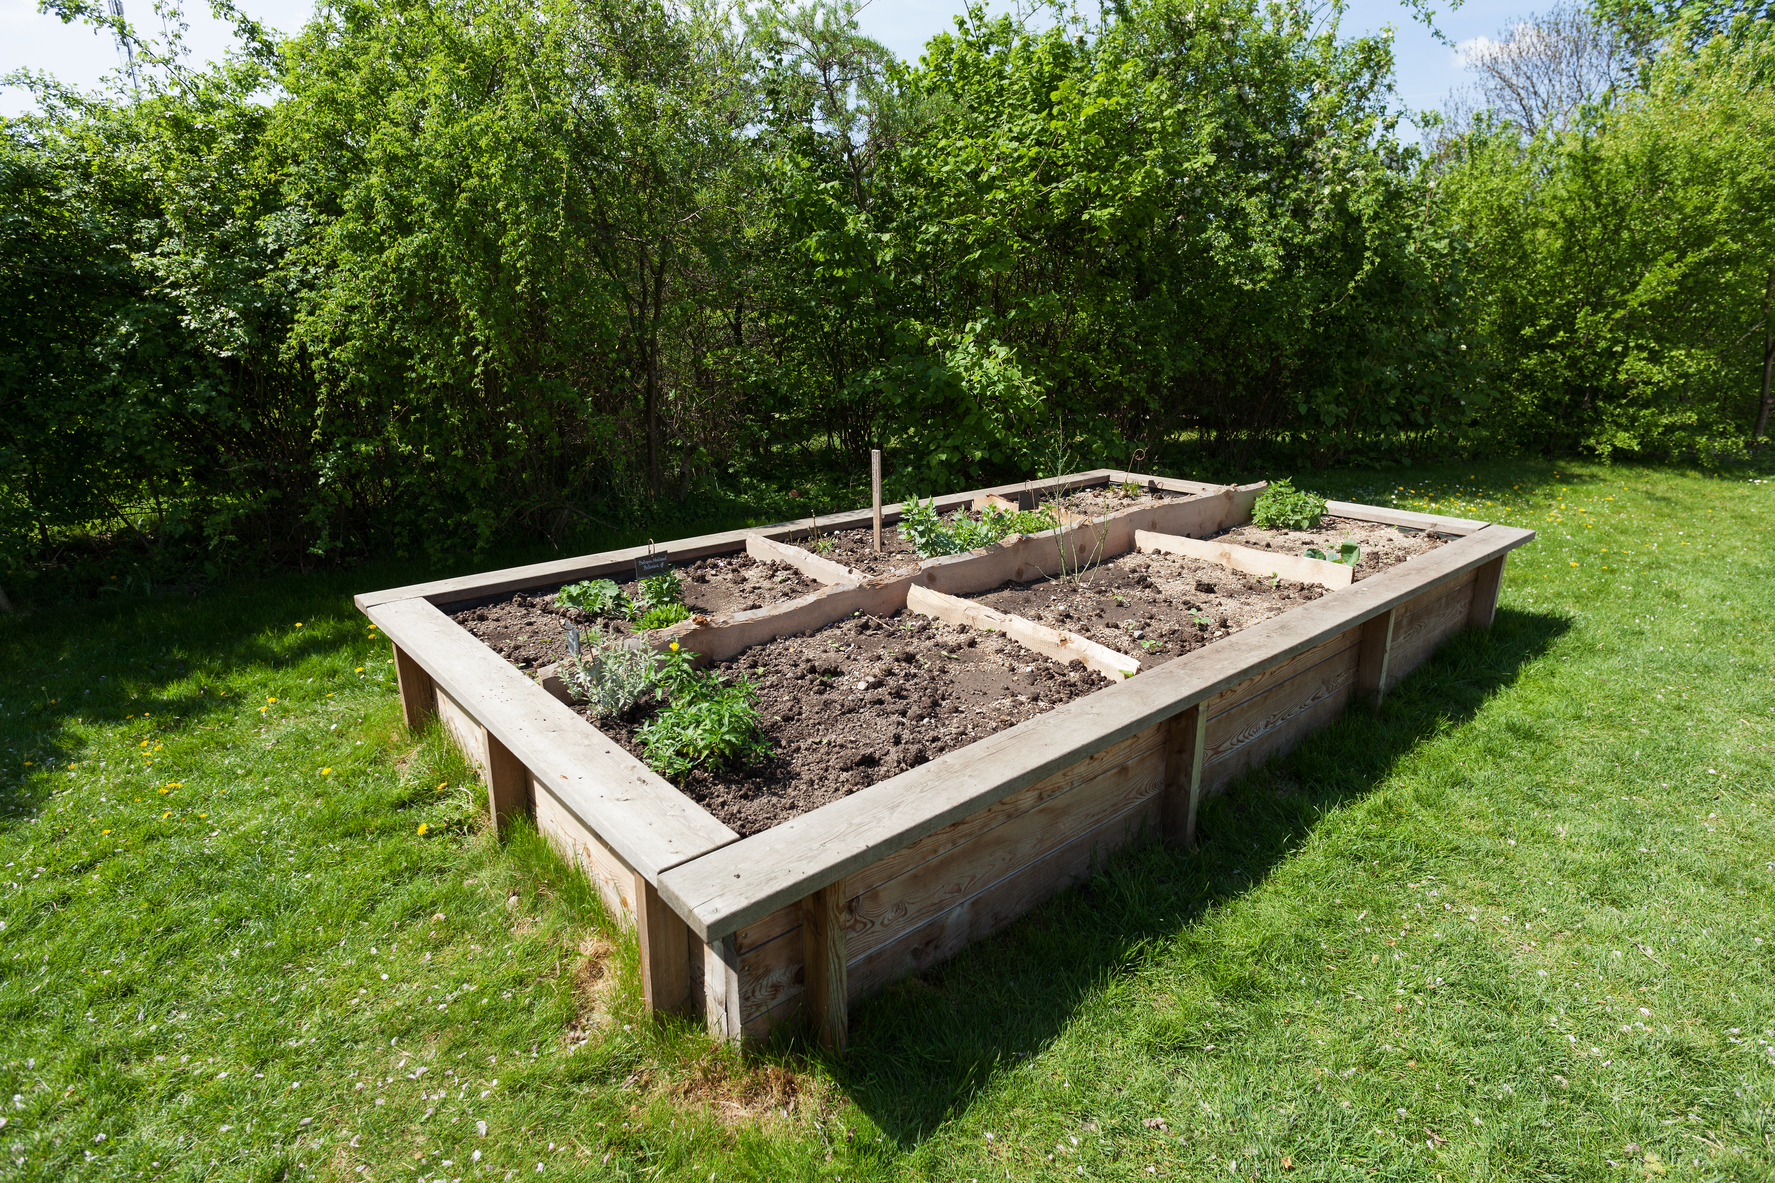 How To Build Raised Garden Beds: Tips For Raised Bed Gardening | The Old  Farmeru0027s Almanac